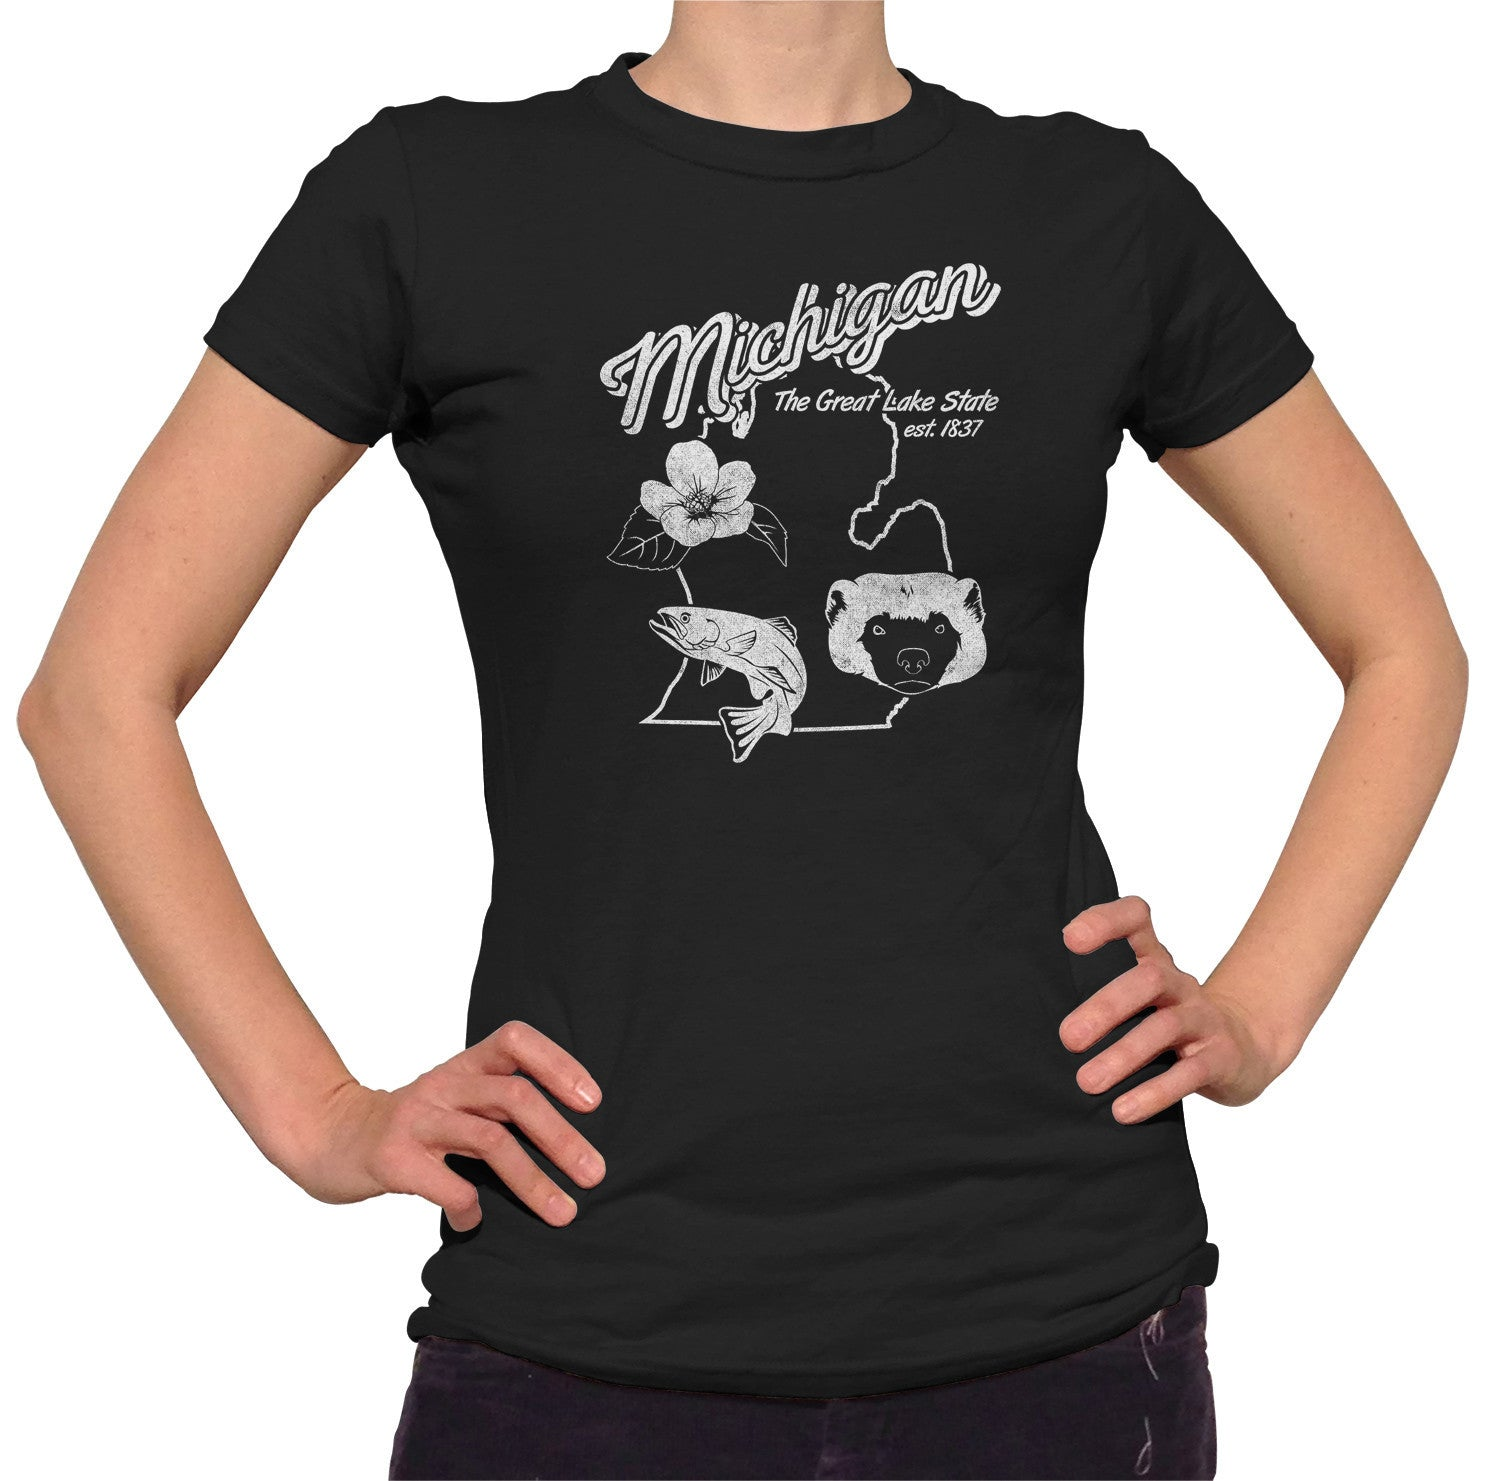 Women's Vintage Michigan State T-Shirt